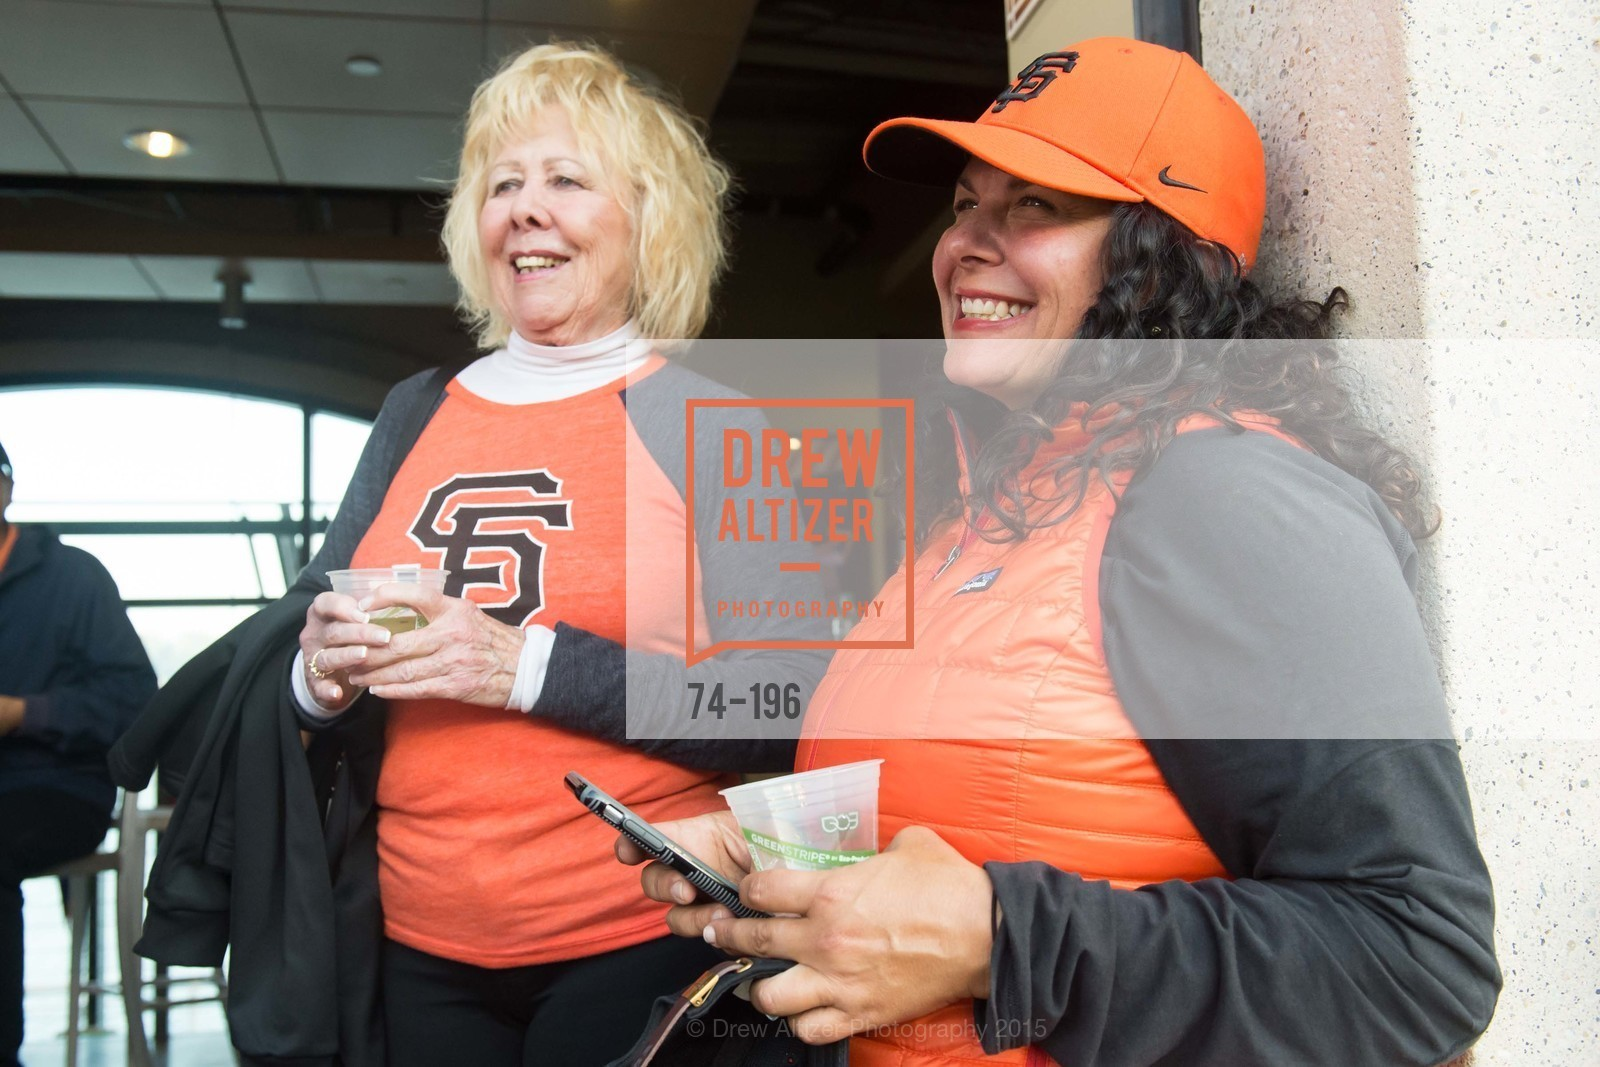 Julia Hollister, Natalie Dale, Francis Ford Coppola Winery Presents Diamond on the Diamond, San Francisco Giants AT&T Park, Virgin America Loft. 24 Willie Mays Plaza, July 10th, 2015,Drew Altizer, Drew Altizer Photography, full-service agency, private events, San Francisco photographer, photographer california